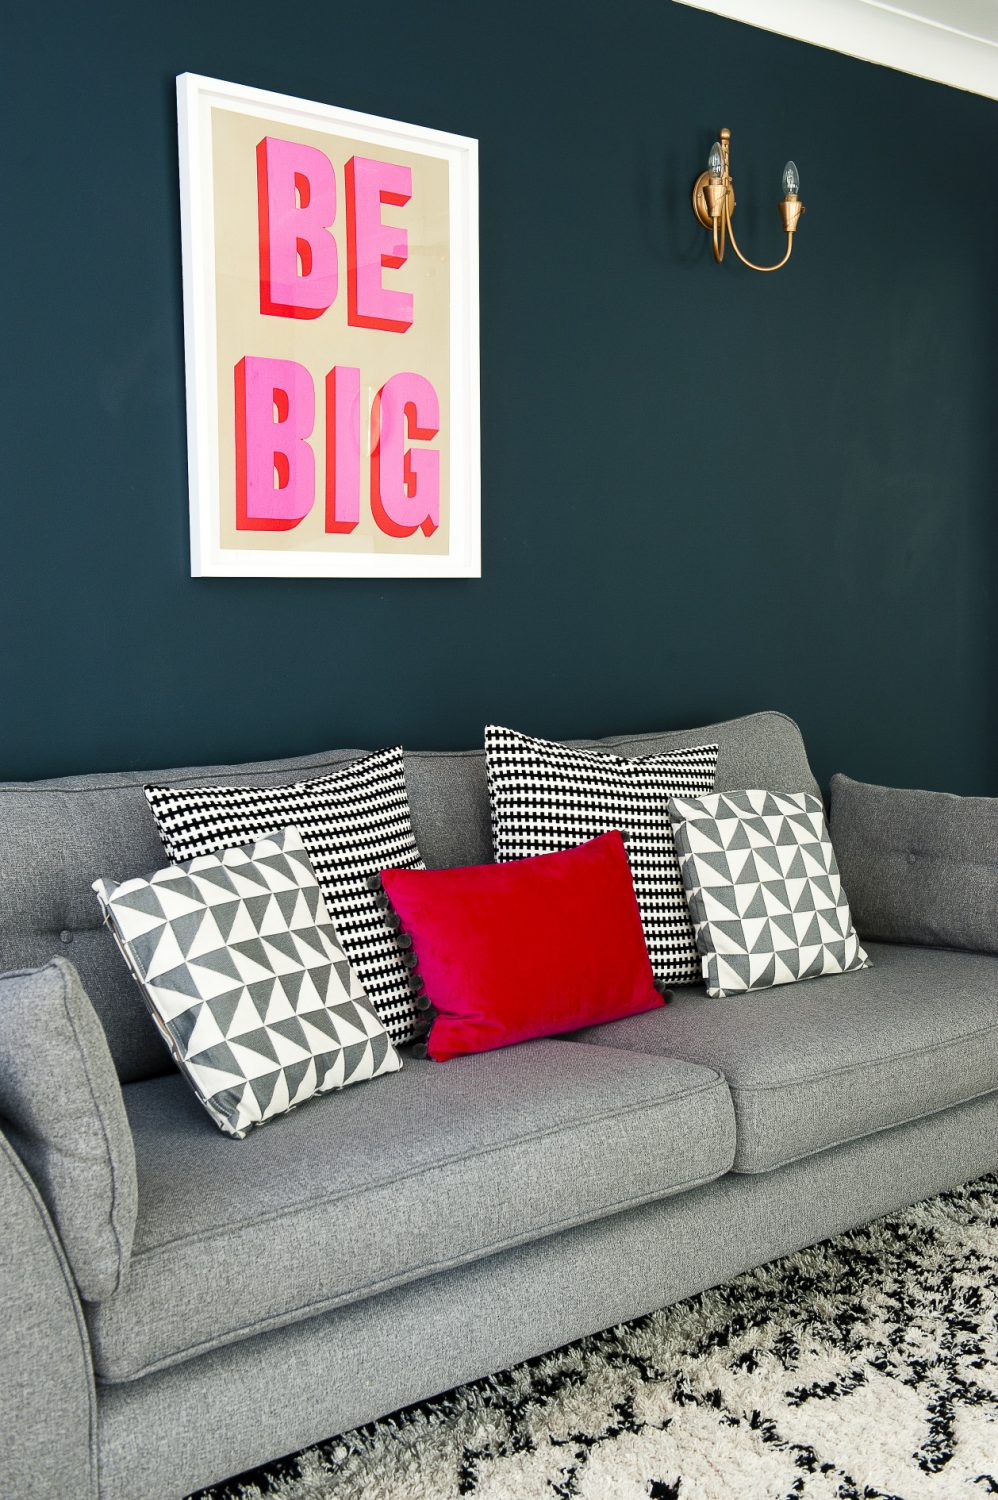 The Be Big poster is from Print Club London and the sofa is French Connection for DFS